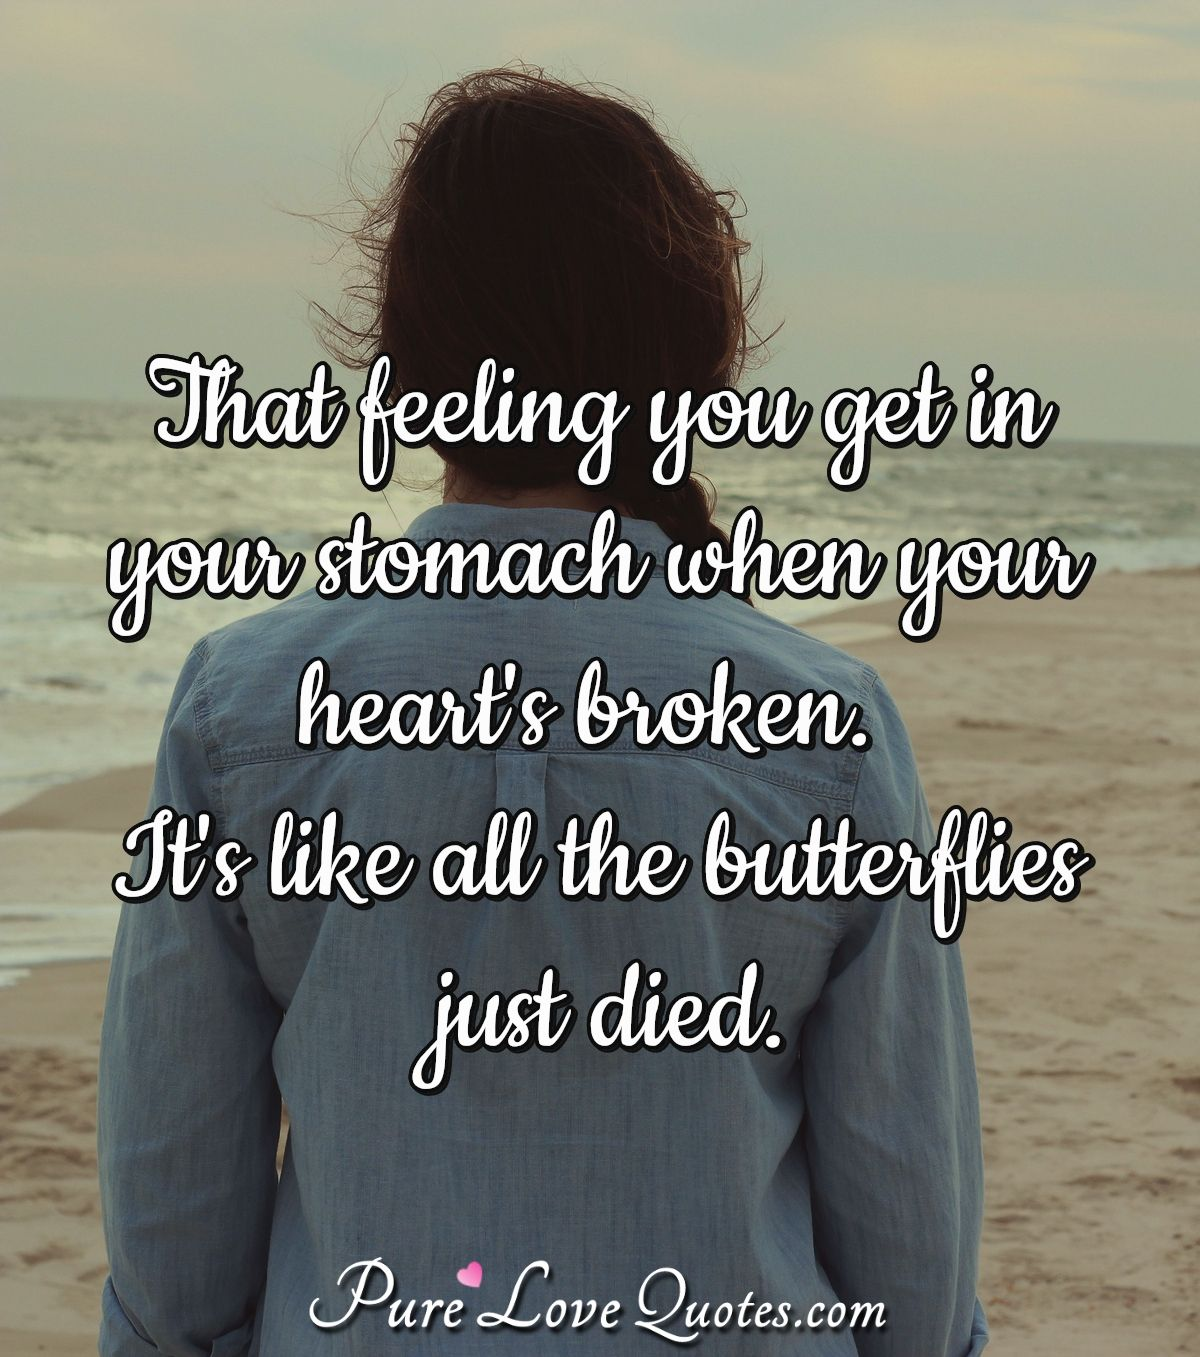 That feeling you get in your stomach when your heart's broken. It's like all the butterflies just died. - Anonymous